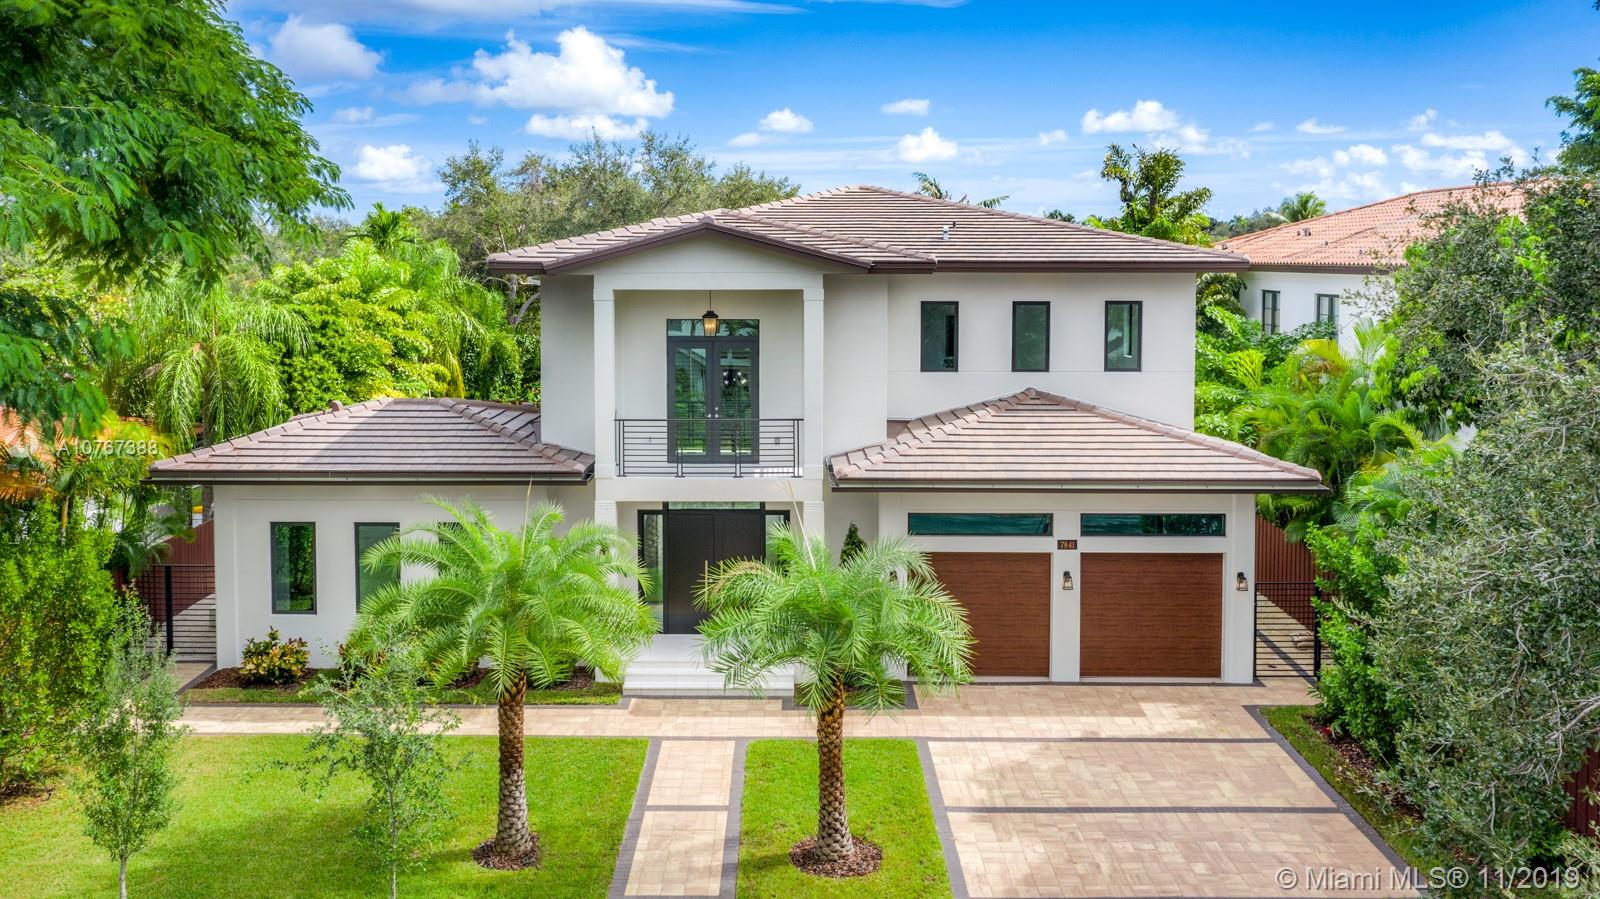 Details for 7841 54th Ct, Miami, FL 33143